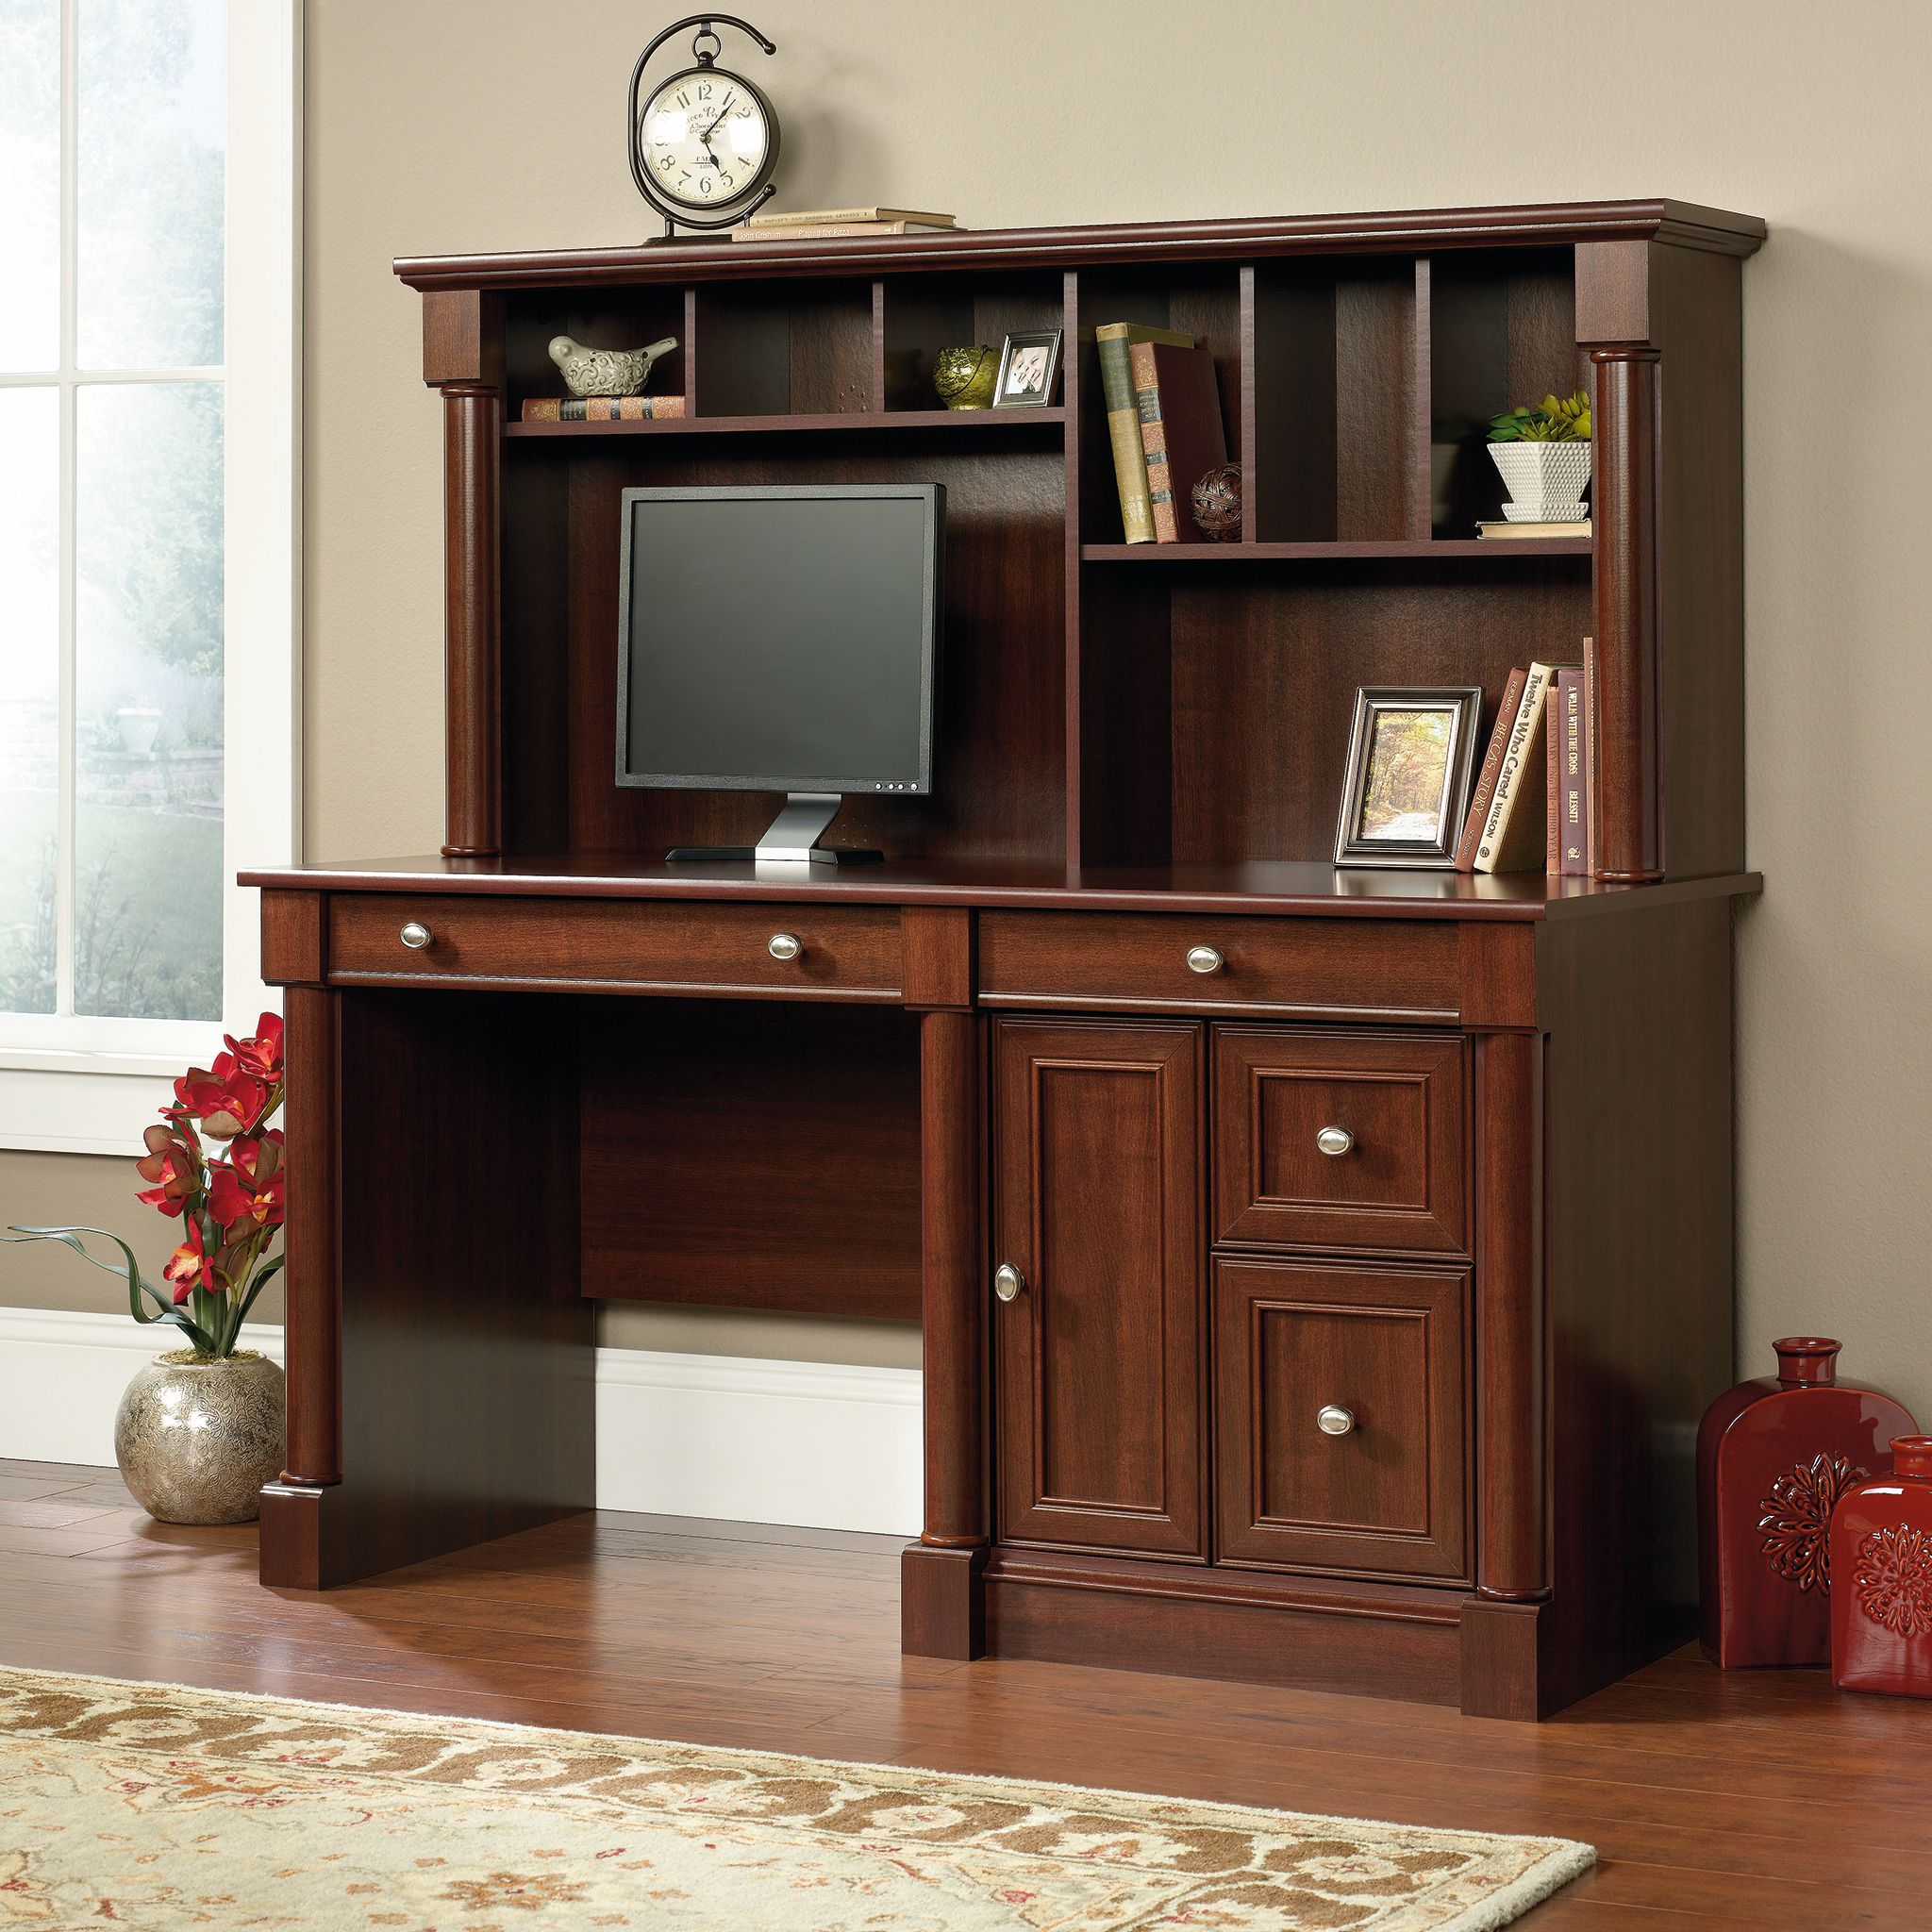 Sauder Palladia Computer Desk with Hutch, Select Cherry Finish